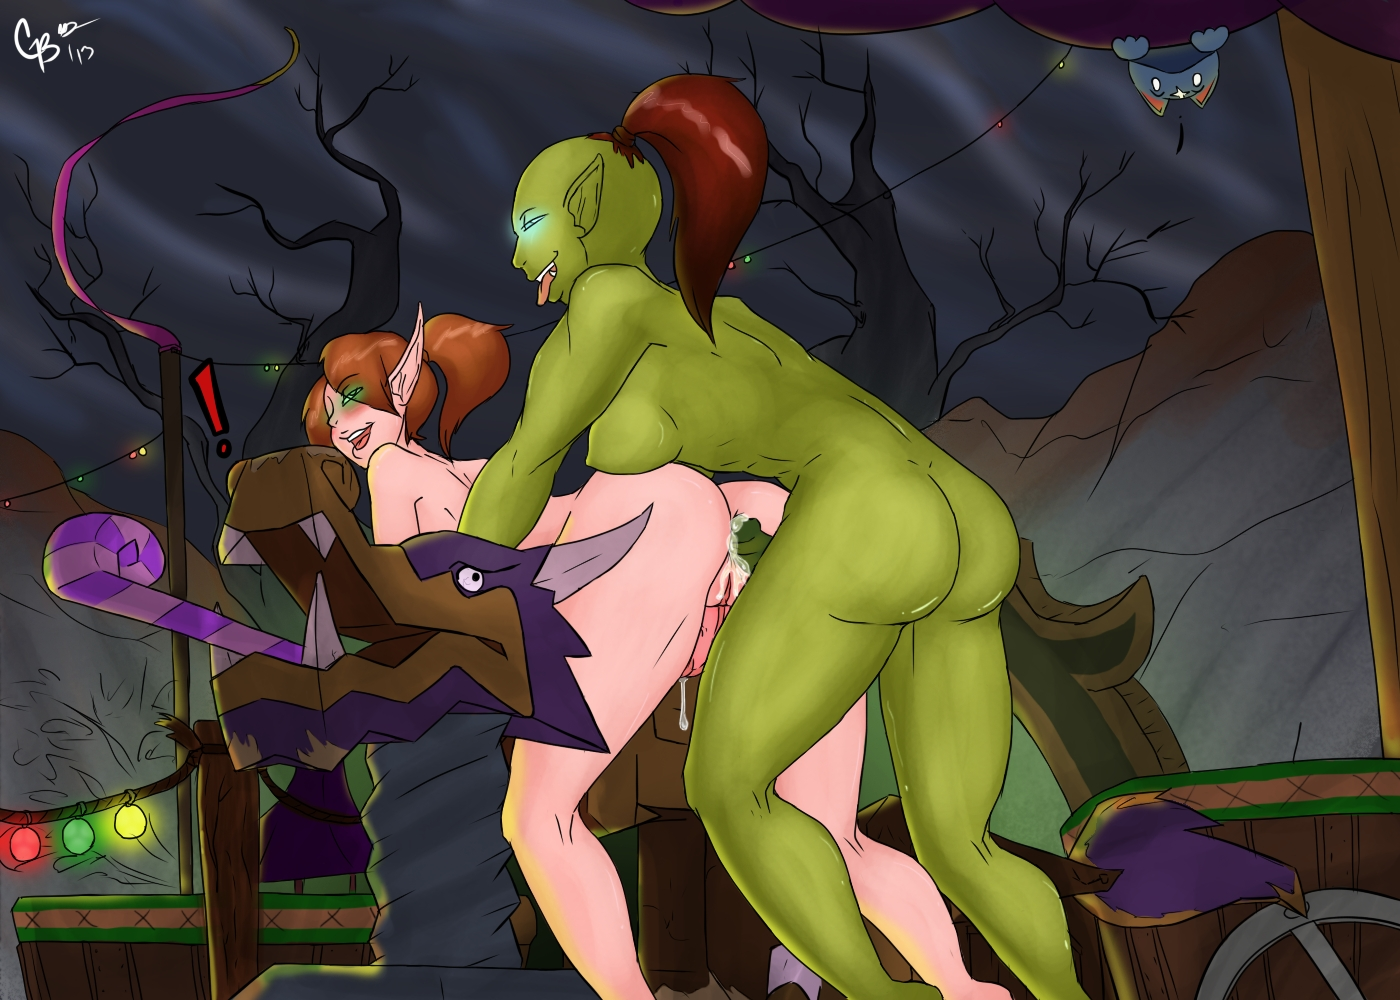 Orcs and elves sex pics porn photos